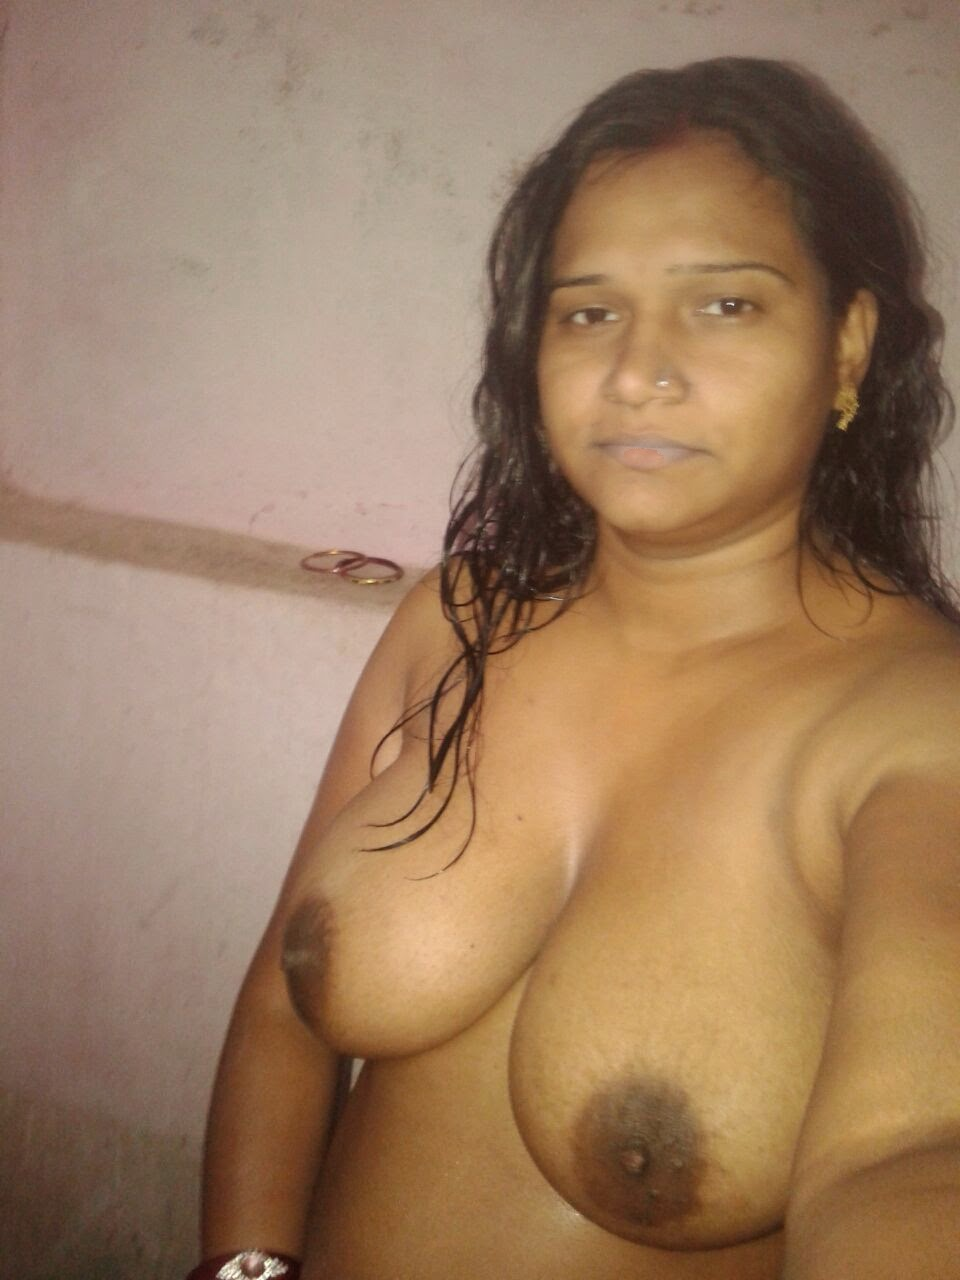 Viewdesisexcom  Desi Sex Videos  Indian sex mms Bhabhi